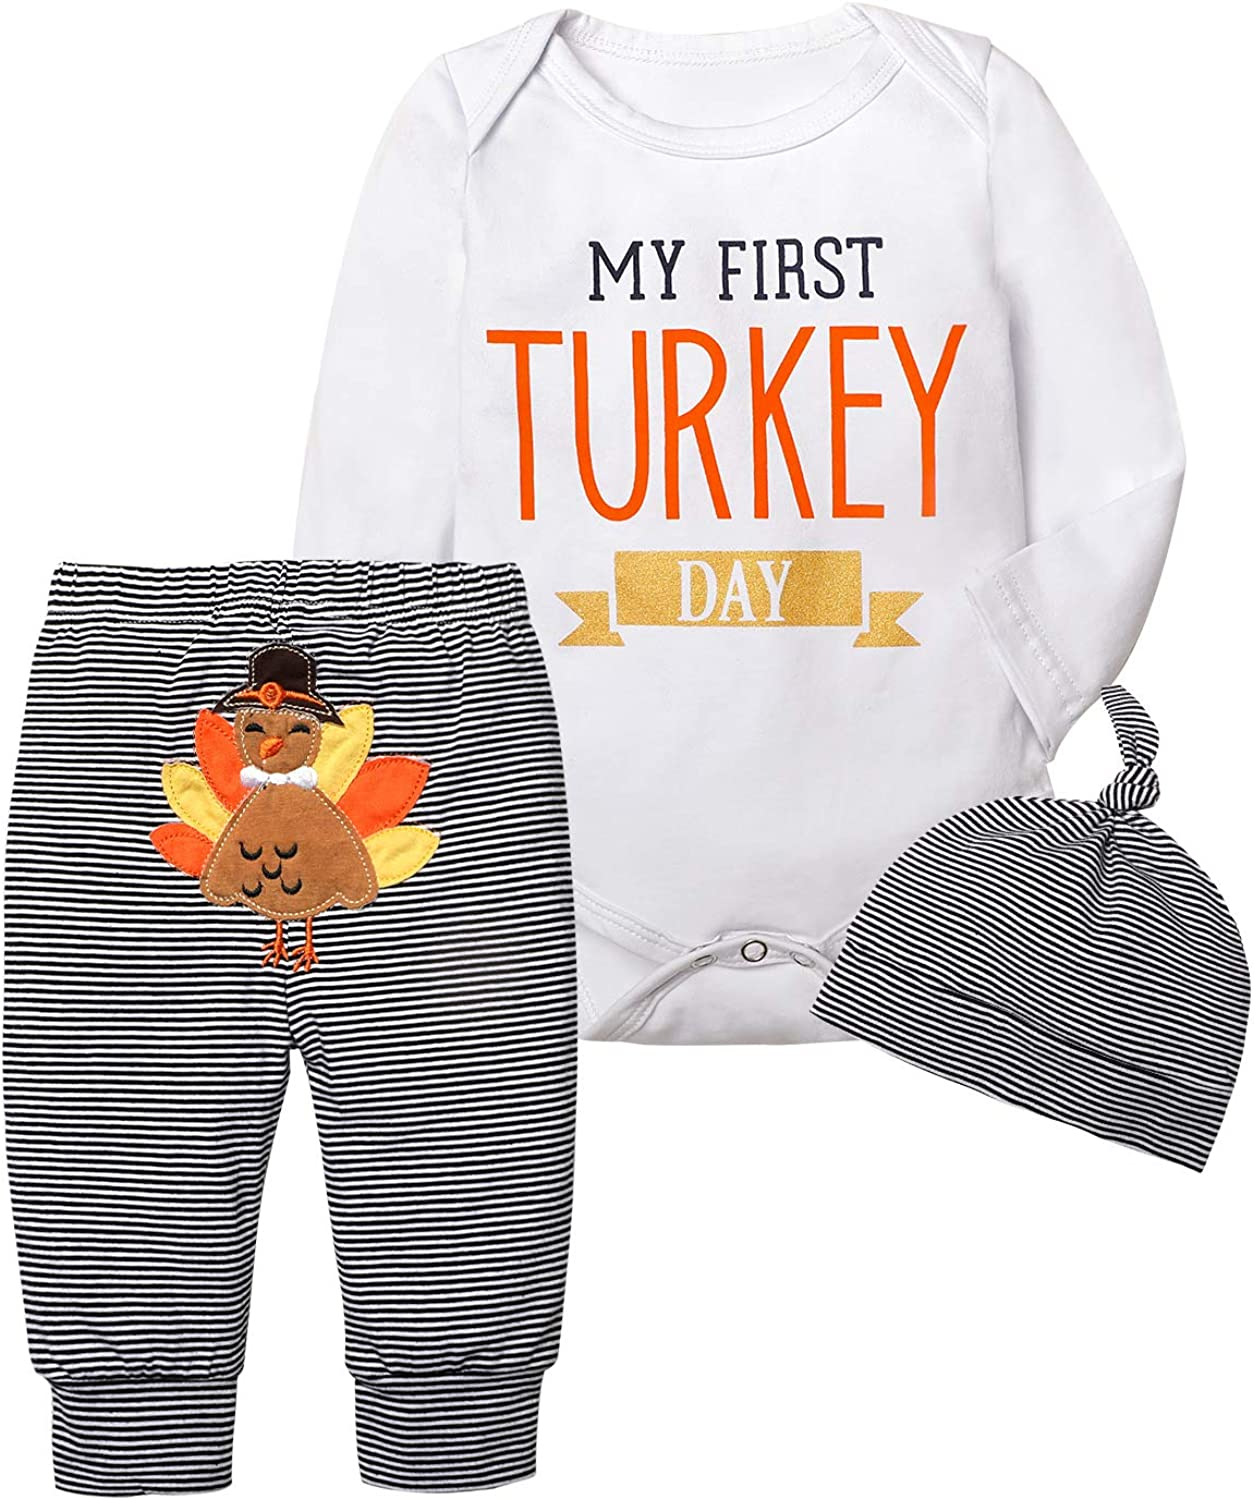 Aixin Toddler Baby Boys Girls Thanksgiving Outfit My First Thanksgiving Romper Bodysuit Stripe Hoodie Jumpsuit Pajamas 0-18M